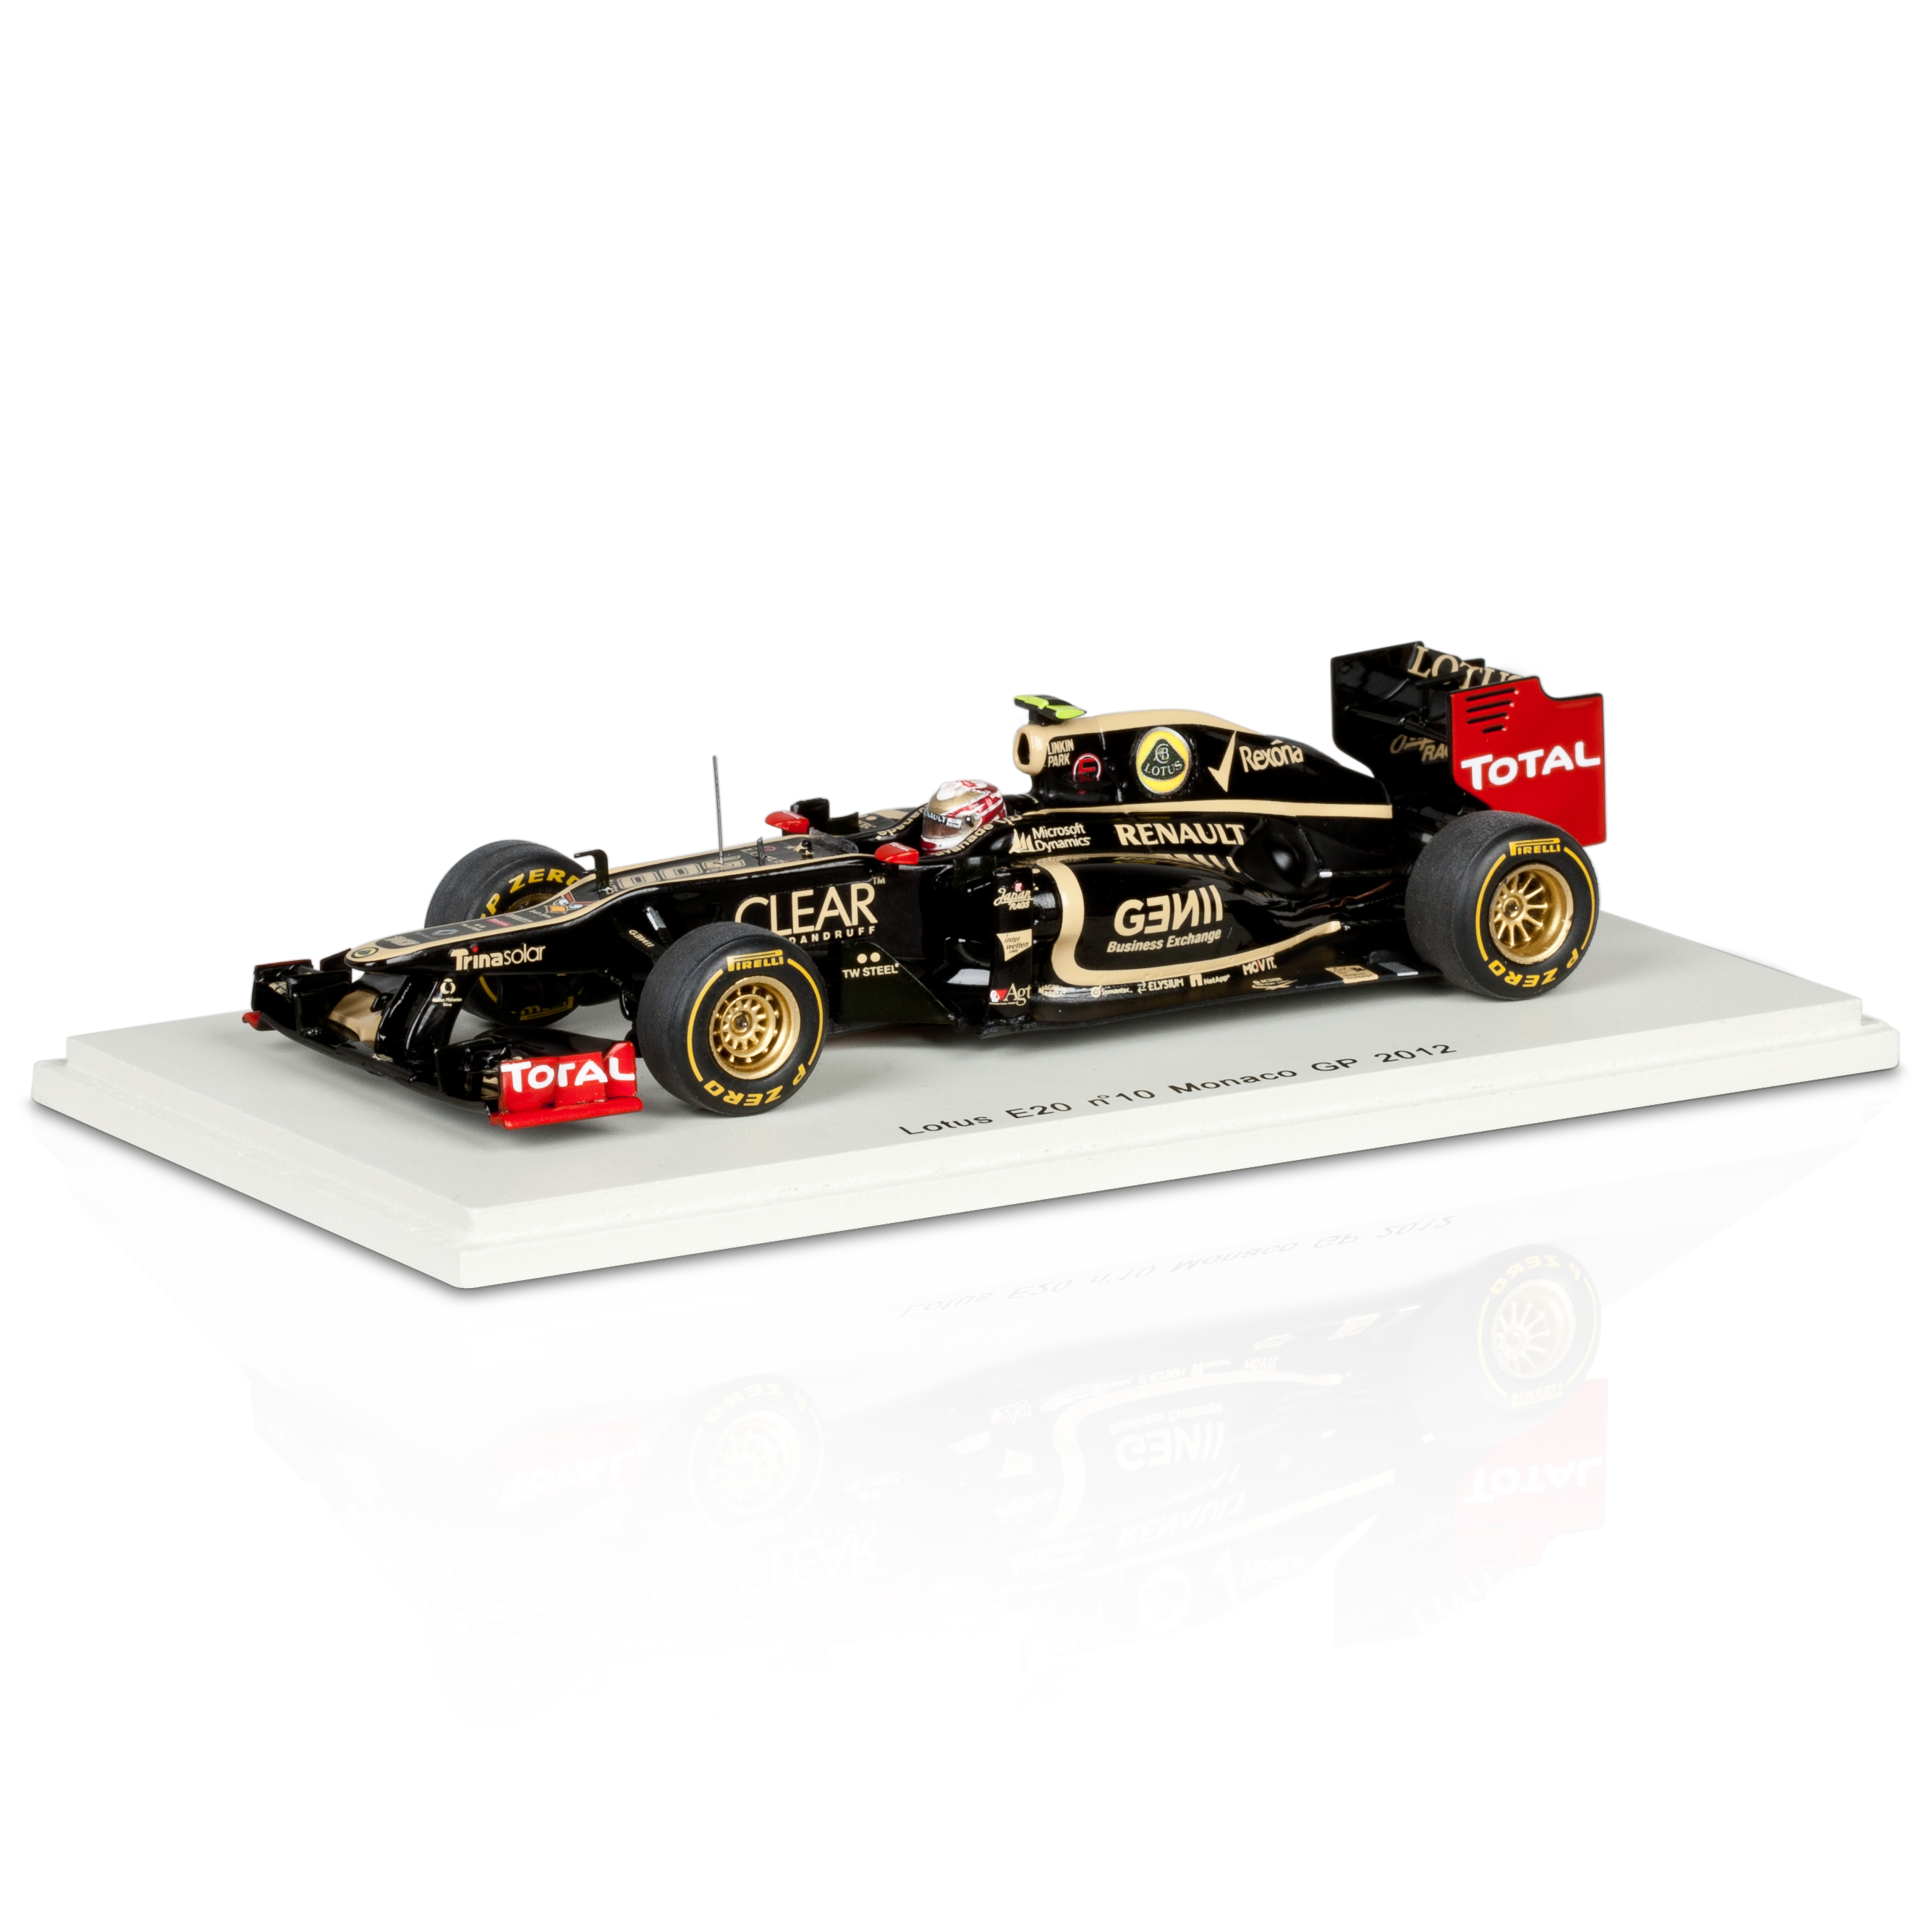 Lotus F1 Team Renault E20 Romain Grosjean Monaco GP 2012 1:43 Scale